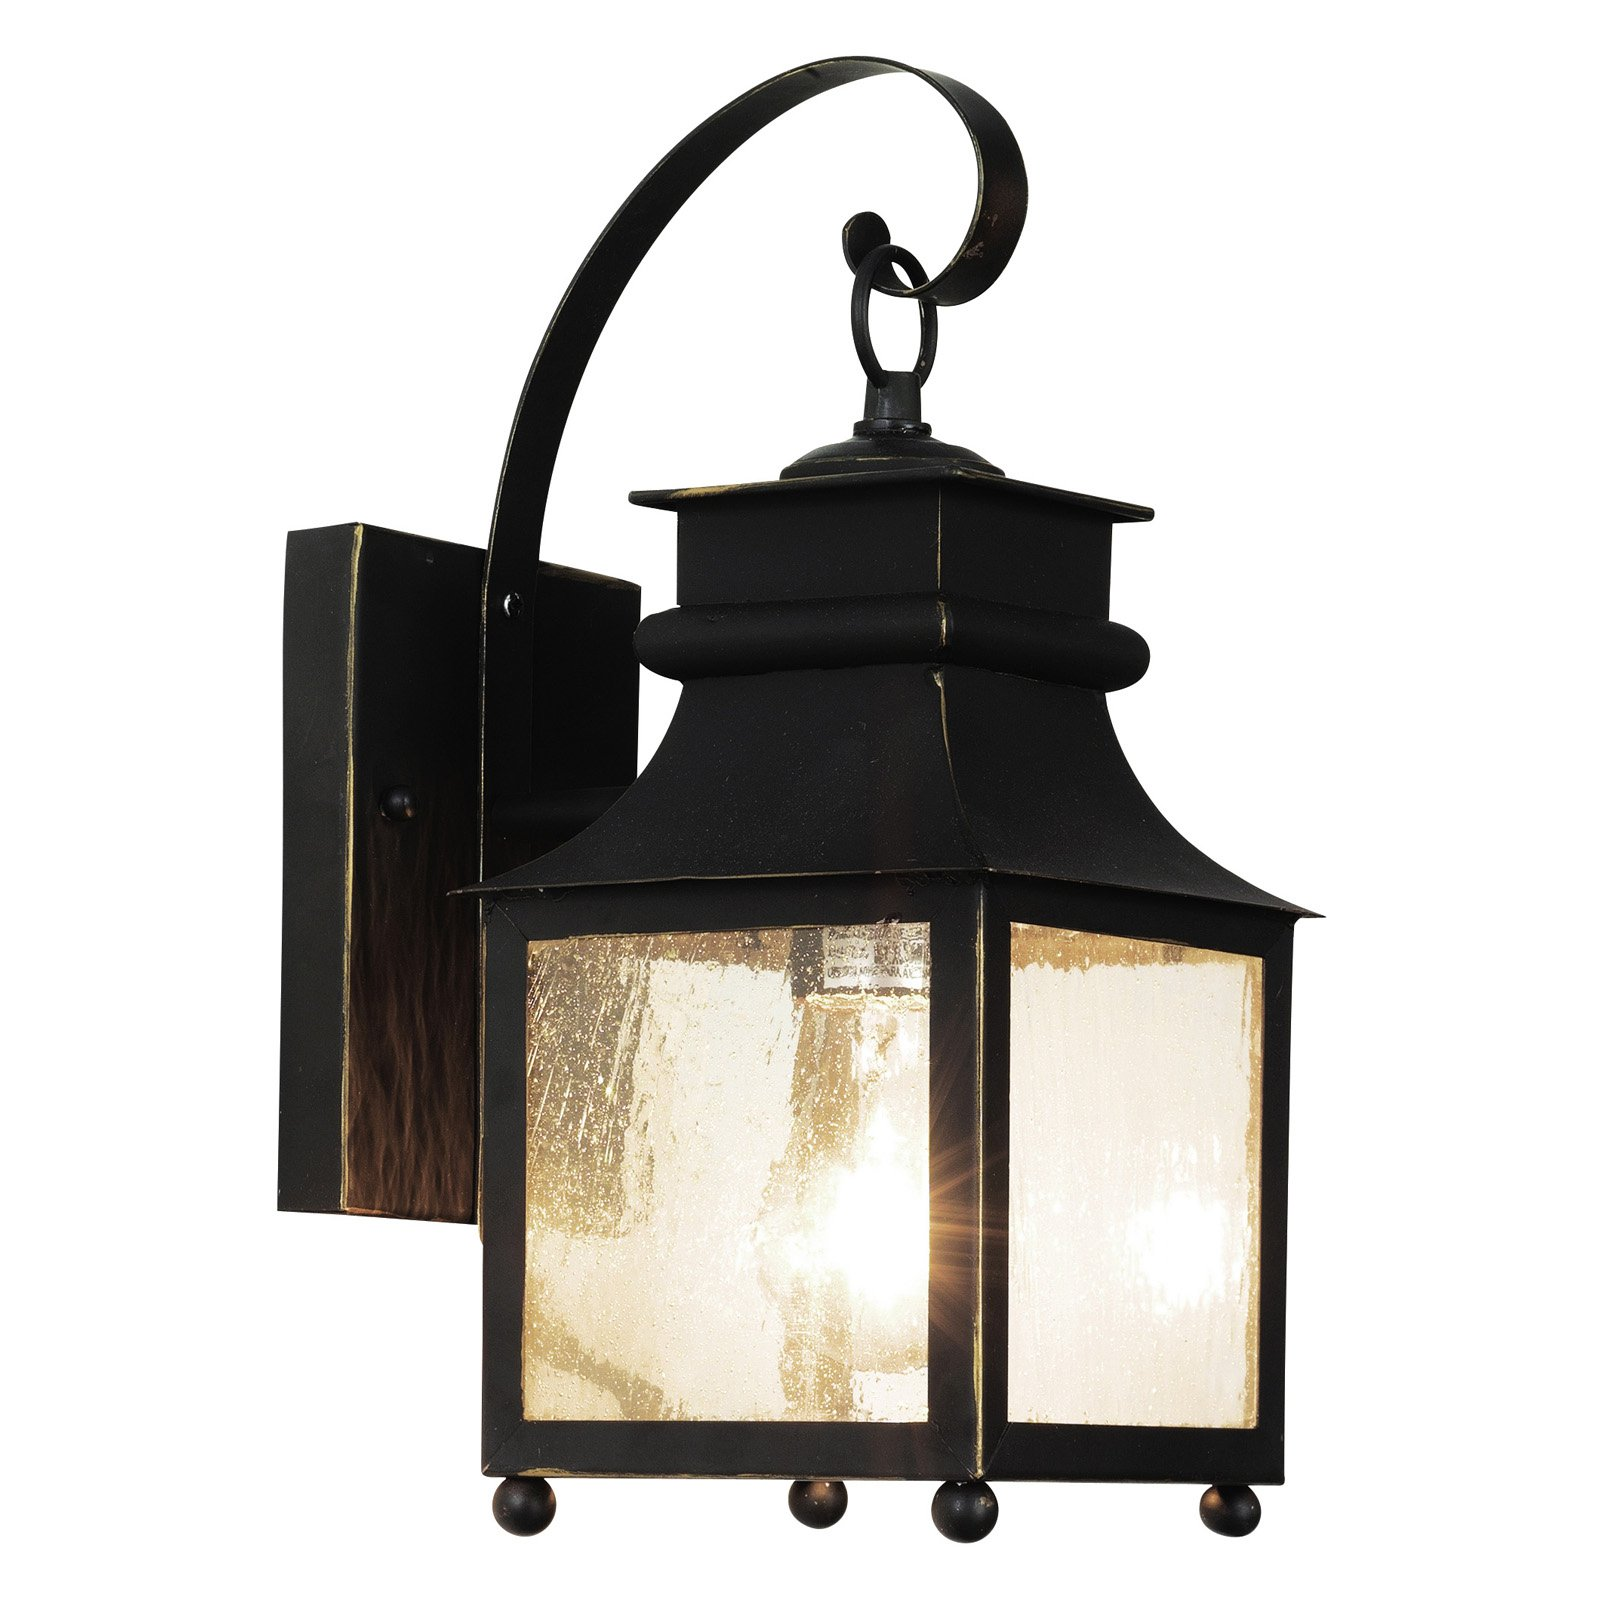 Trans Globe 45630 WB Coach Lantern - Weather Bronze - 6W in.